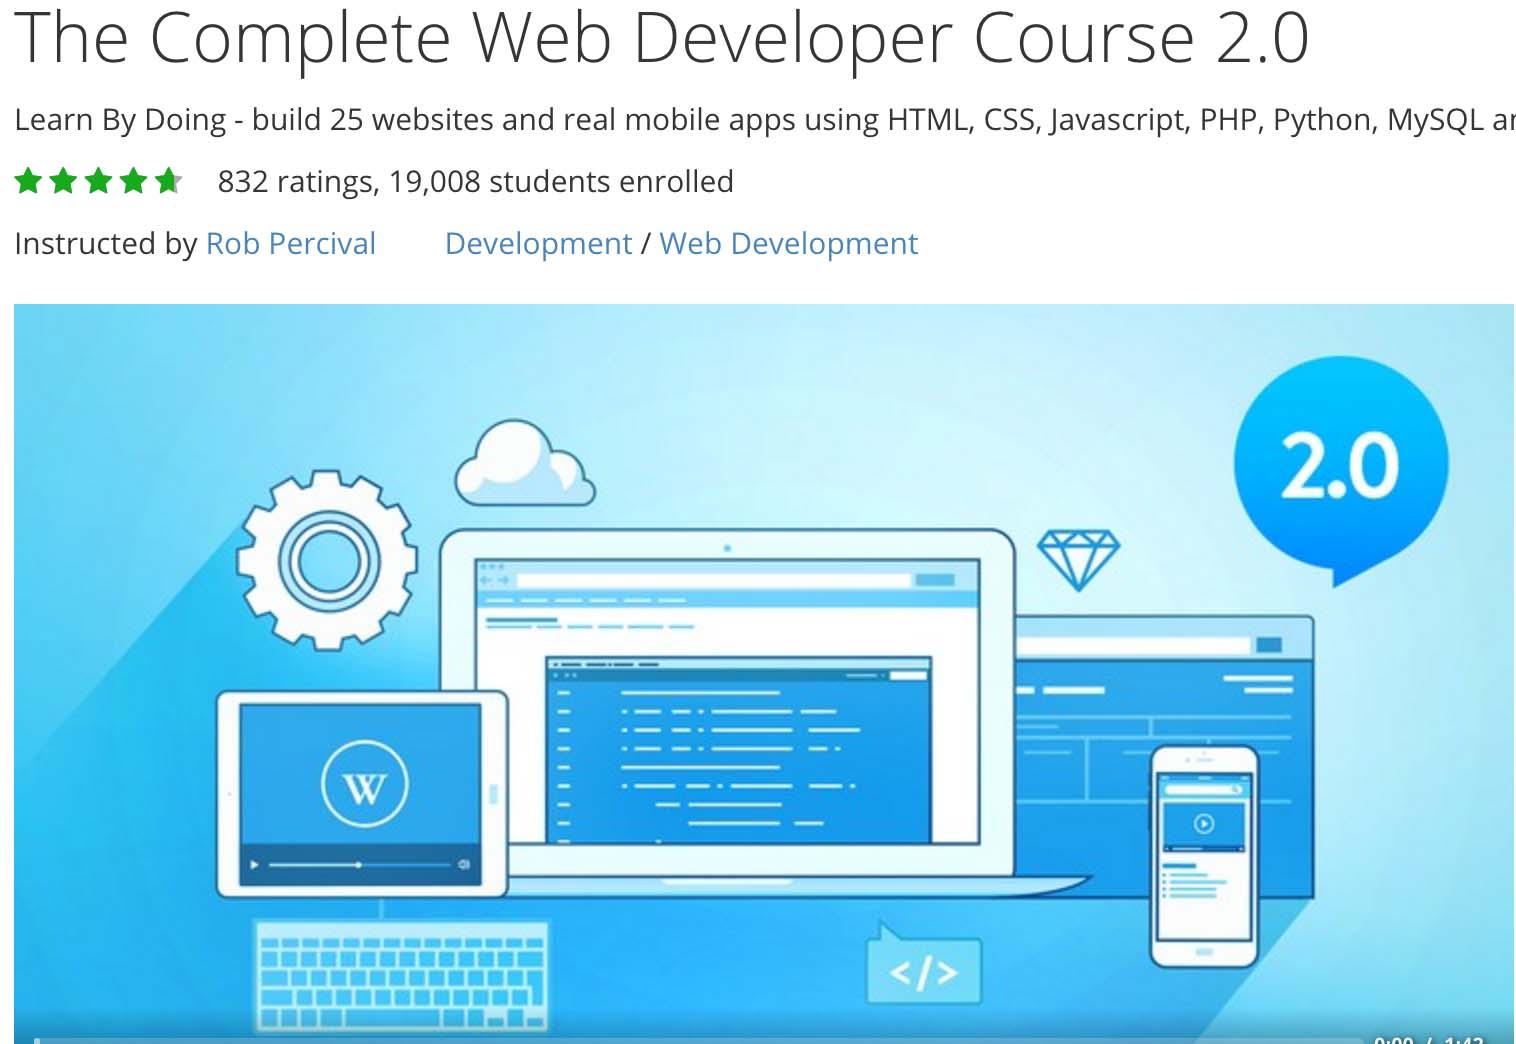 complete web developer course 2.0 coupon